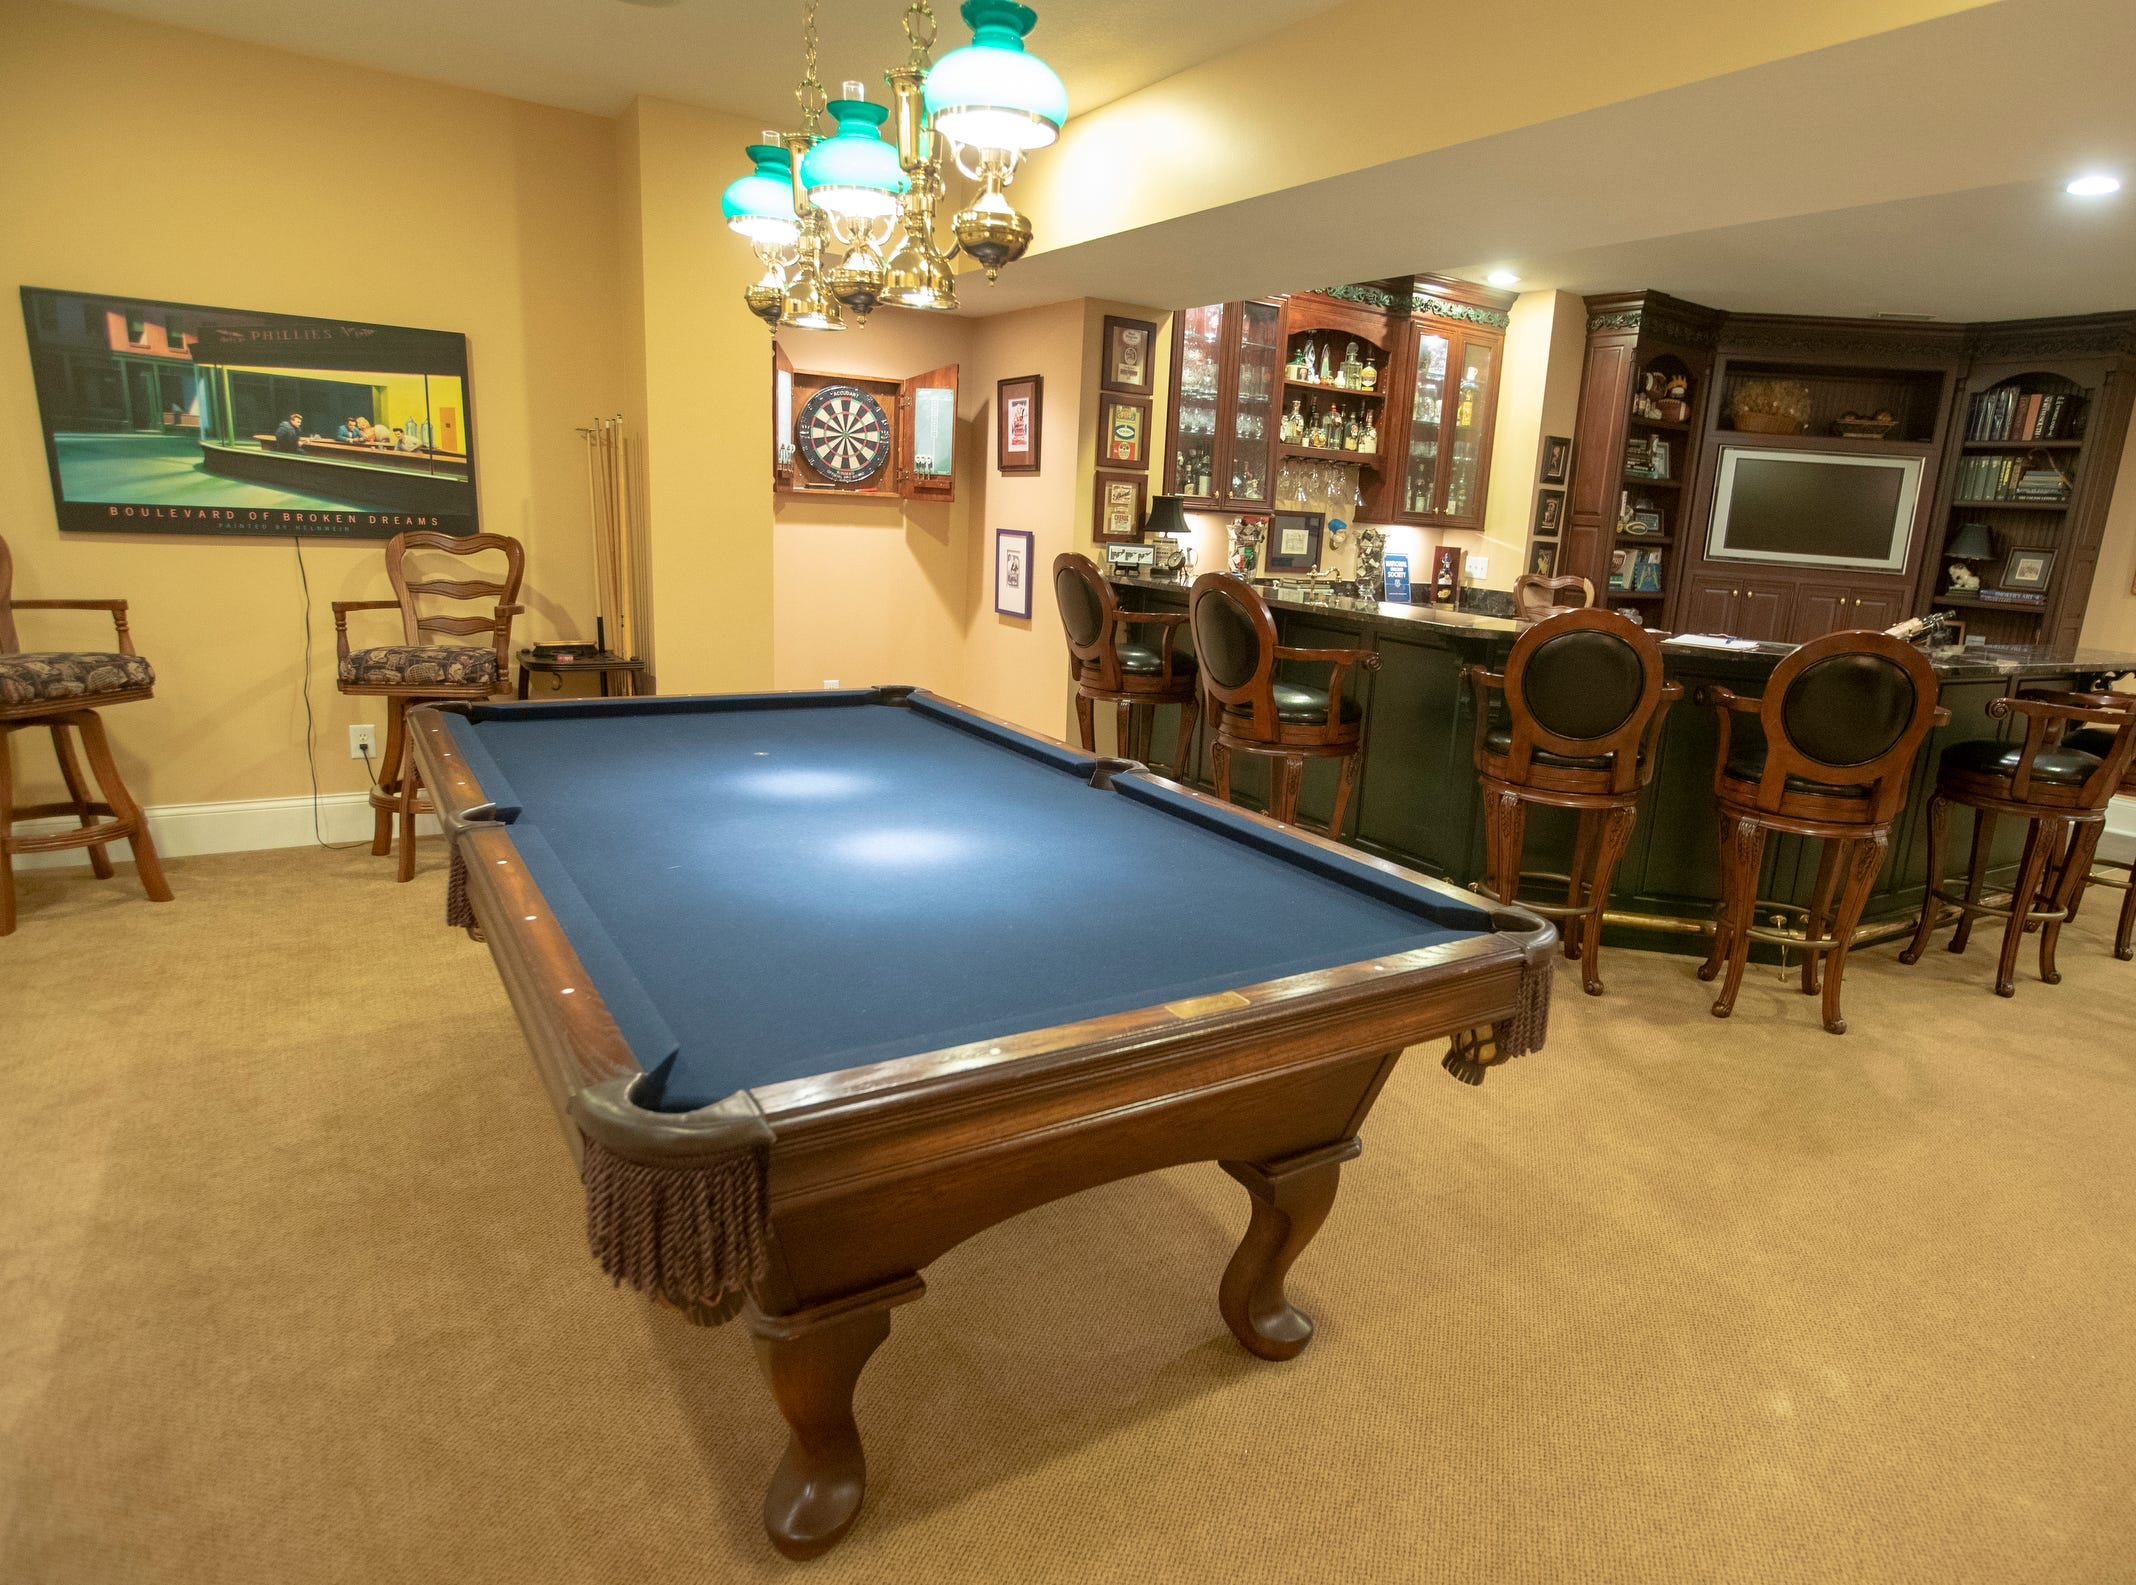 A basement game room inside a thirteen-year-old Victorian home in the Village of West Clay, Carmel, March 20, 2019. The house includes 16 rooms with five bedrooms, 8,348 square feet, and is listed at $1.275 million.